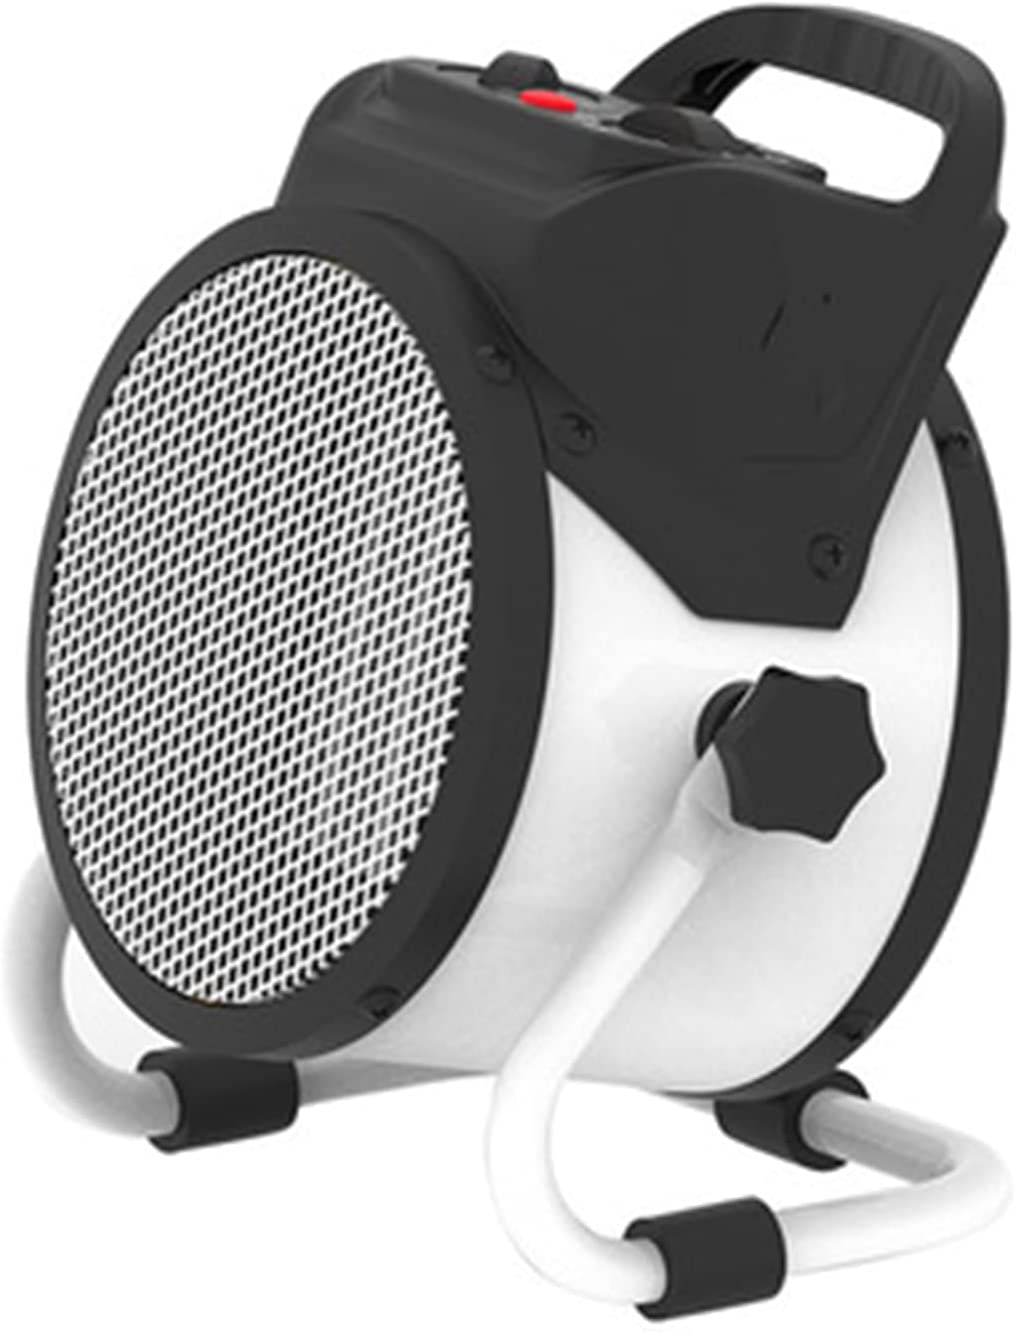 ZIHUAD Small Max 54% OFF Heater Portable 70% OFF Outlet Office Amazon Europe Ame and